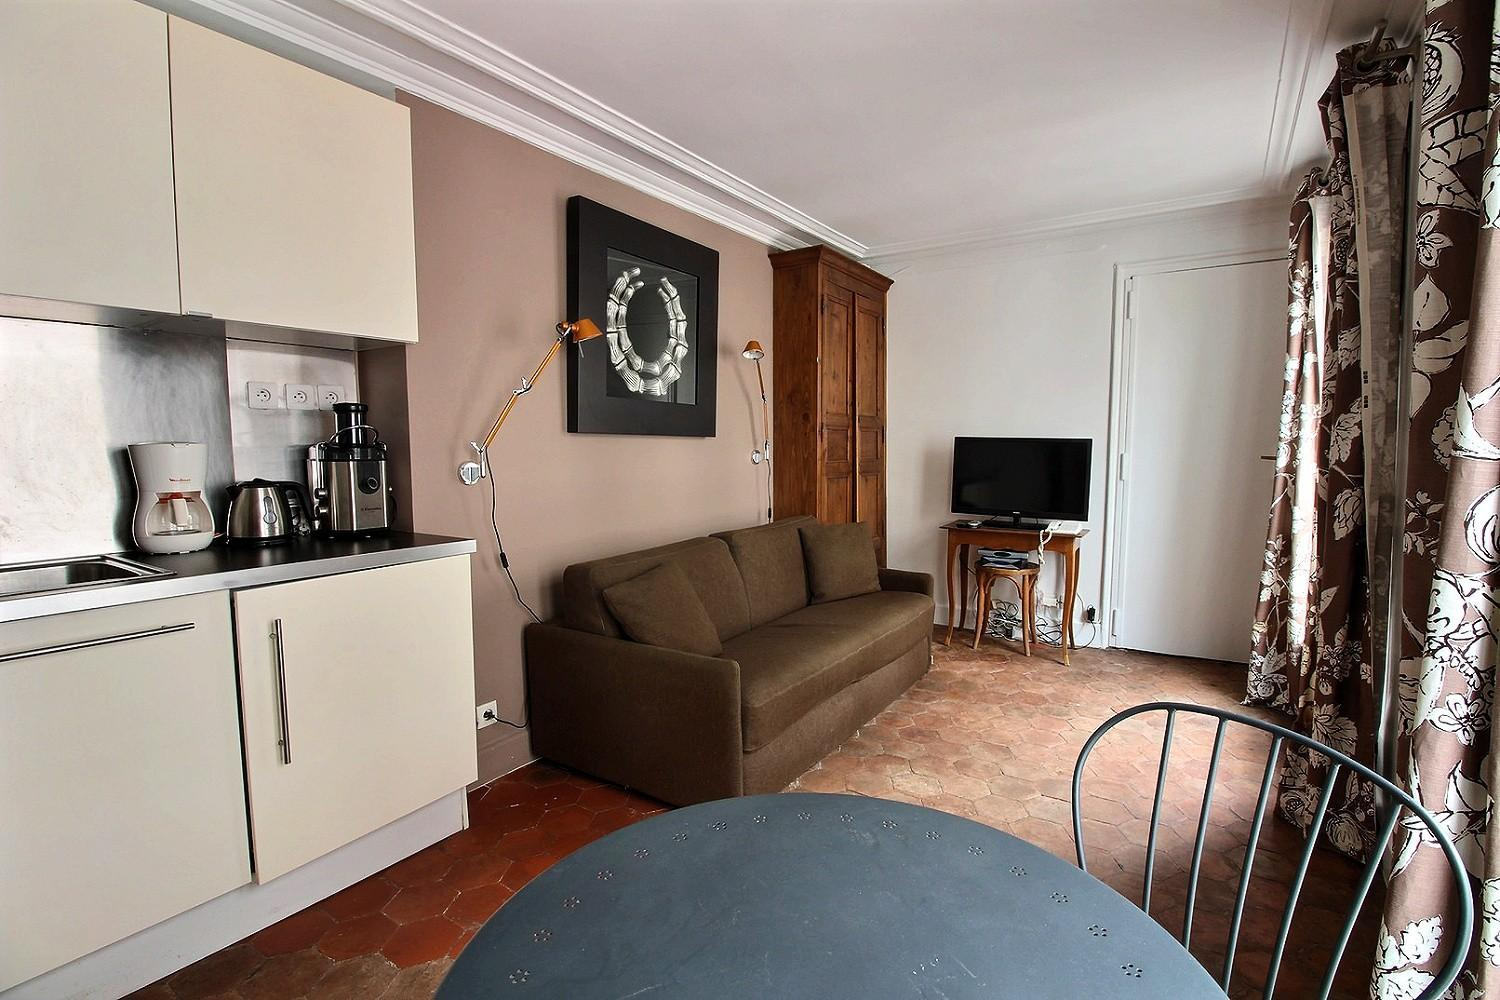 S06315 - Charming studio for 2 people in the Latin Quarter